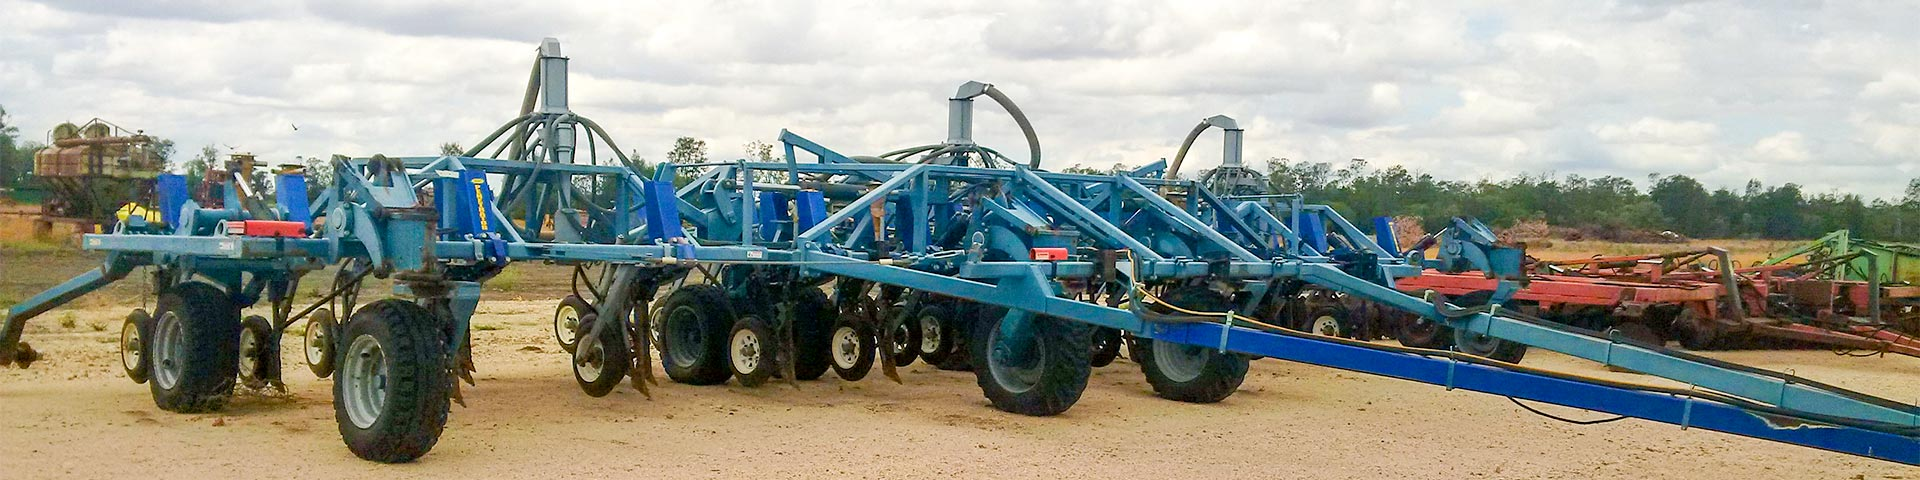 agricultural consignment equipment listing at excel